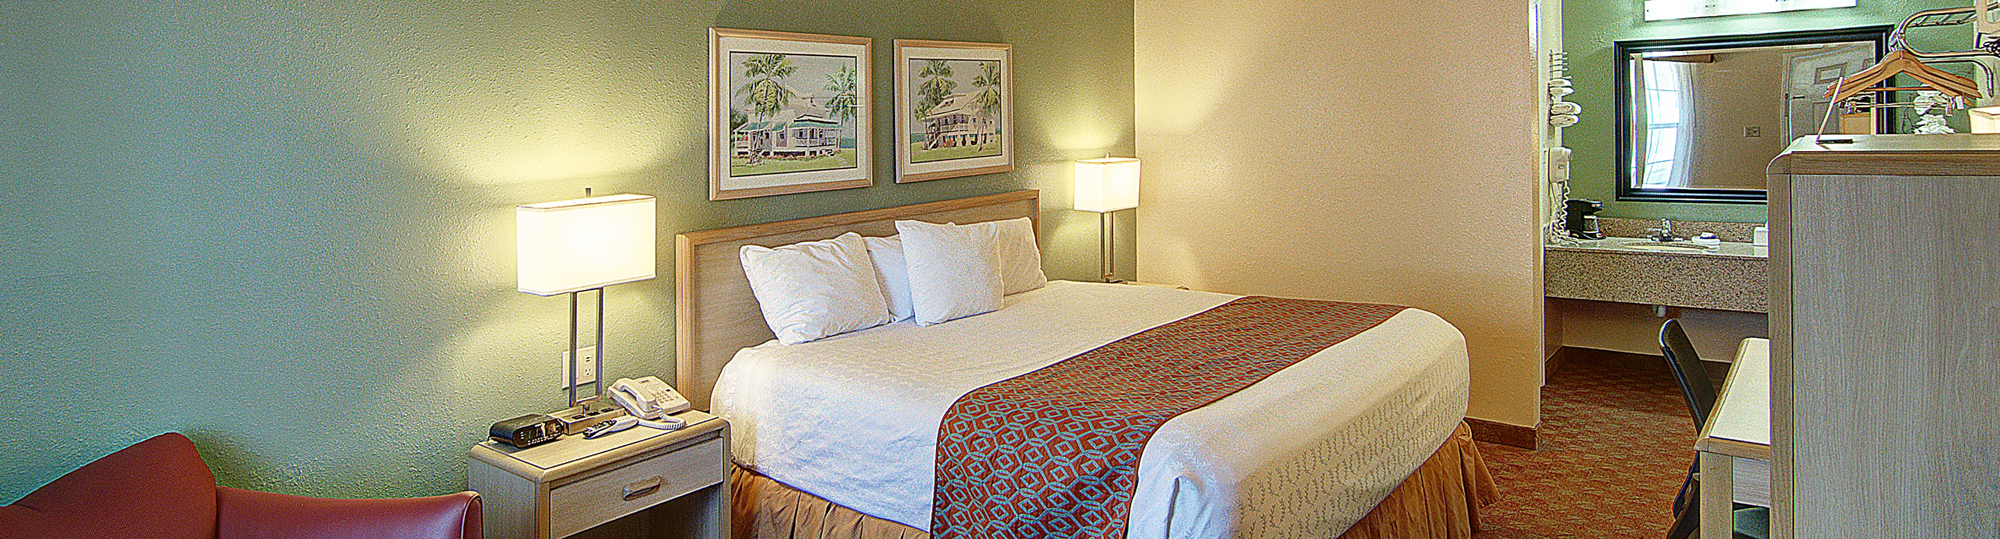 Key West Inn Hotels and Resorts Fairhope